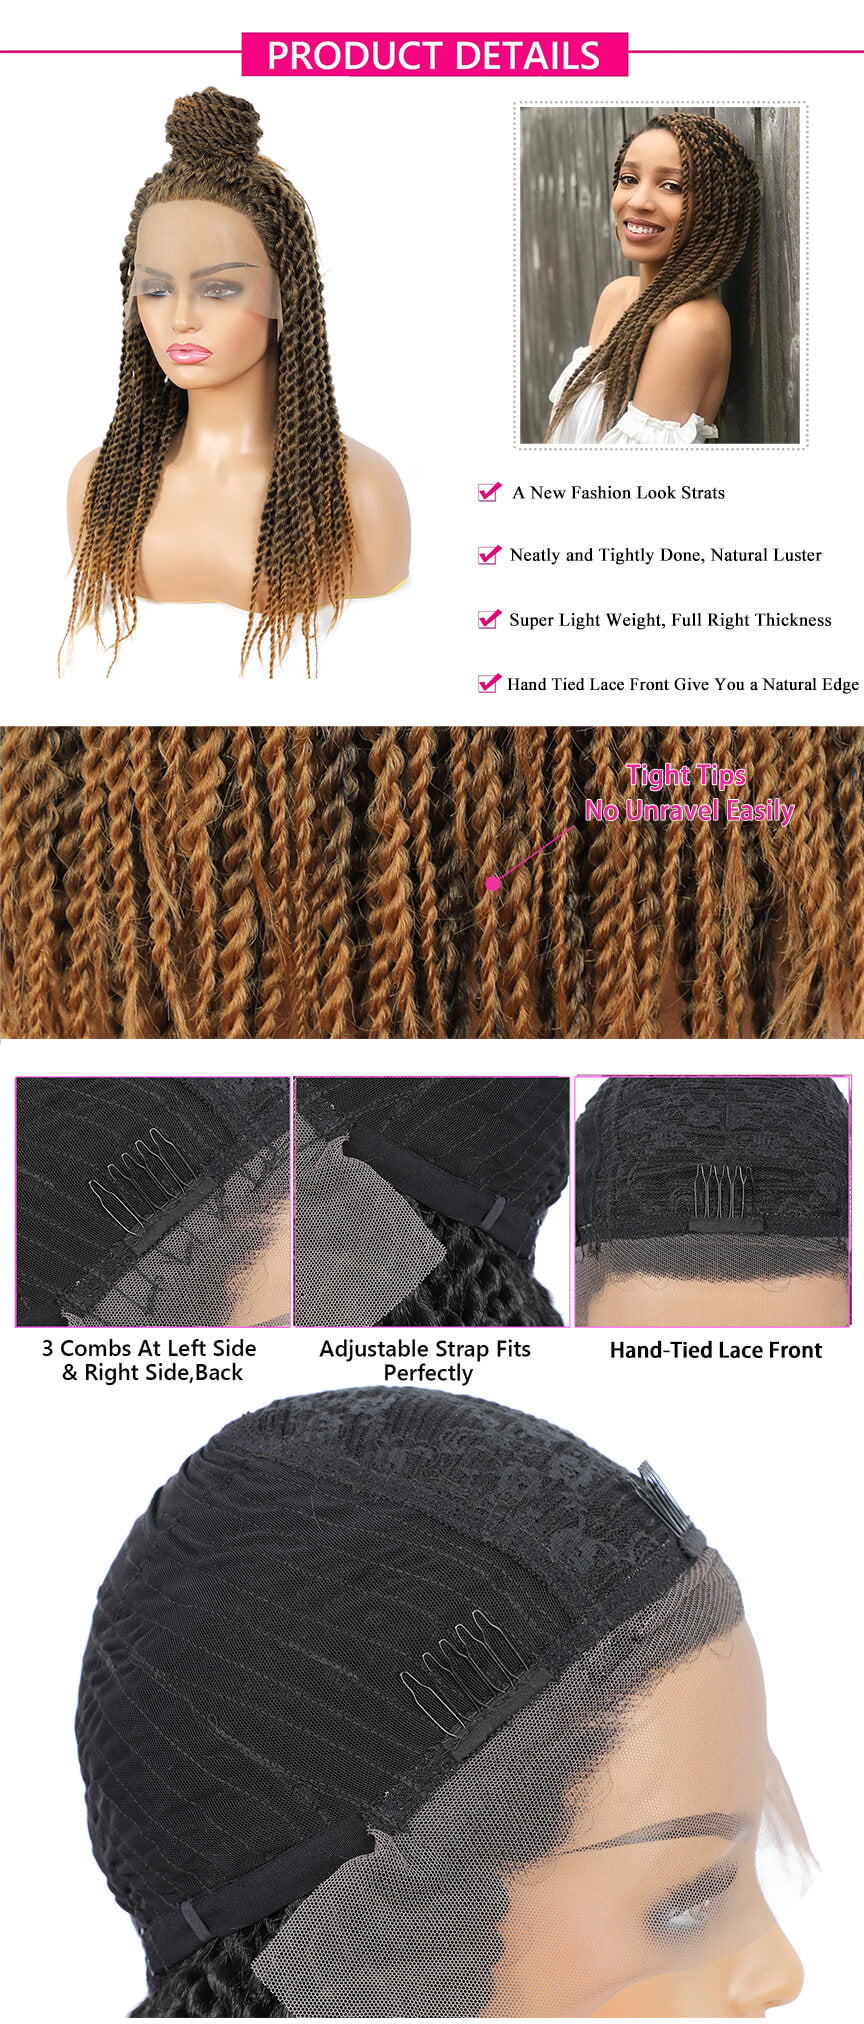 Rosebony Senegalese Twist Briaded #27 Lace Front Wigs Description